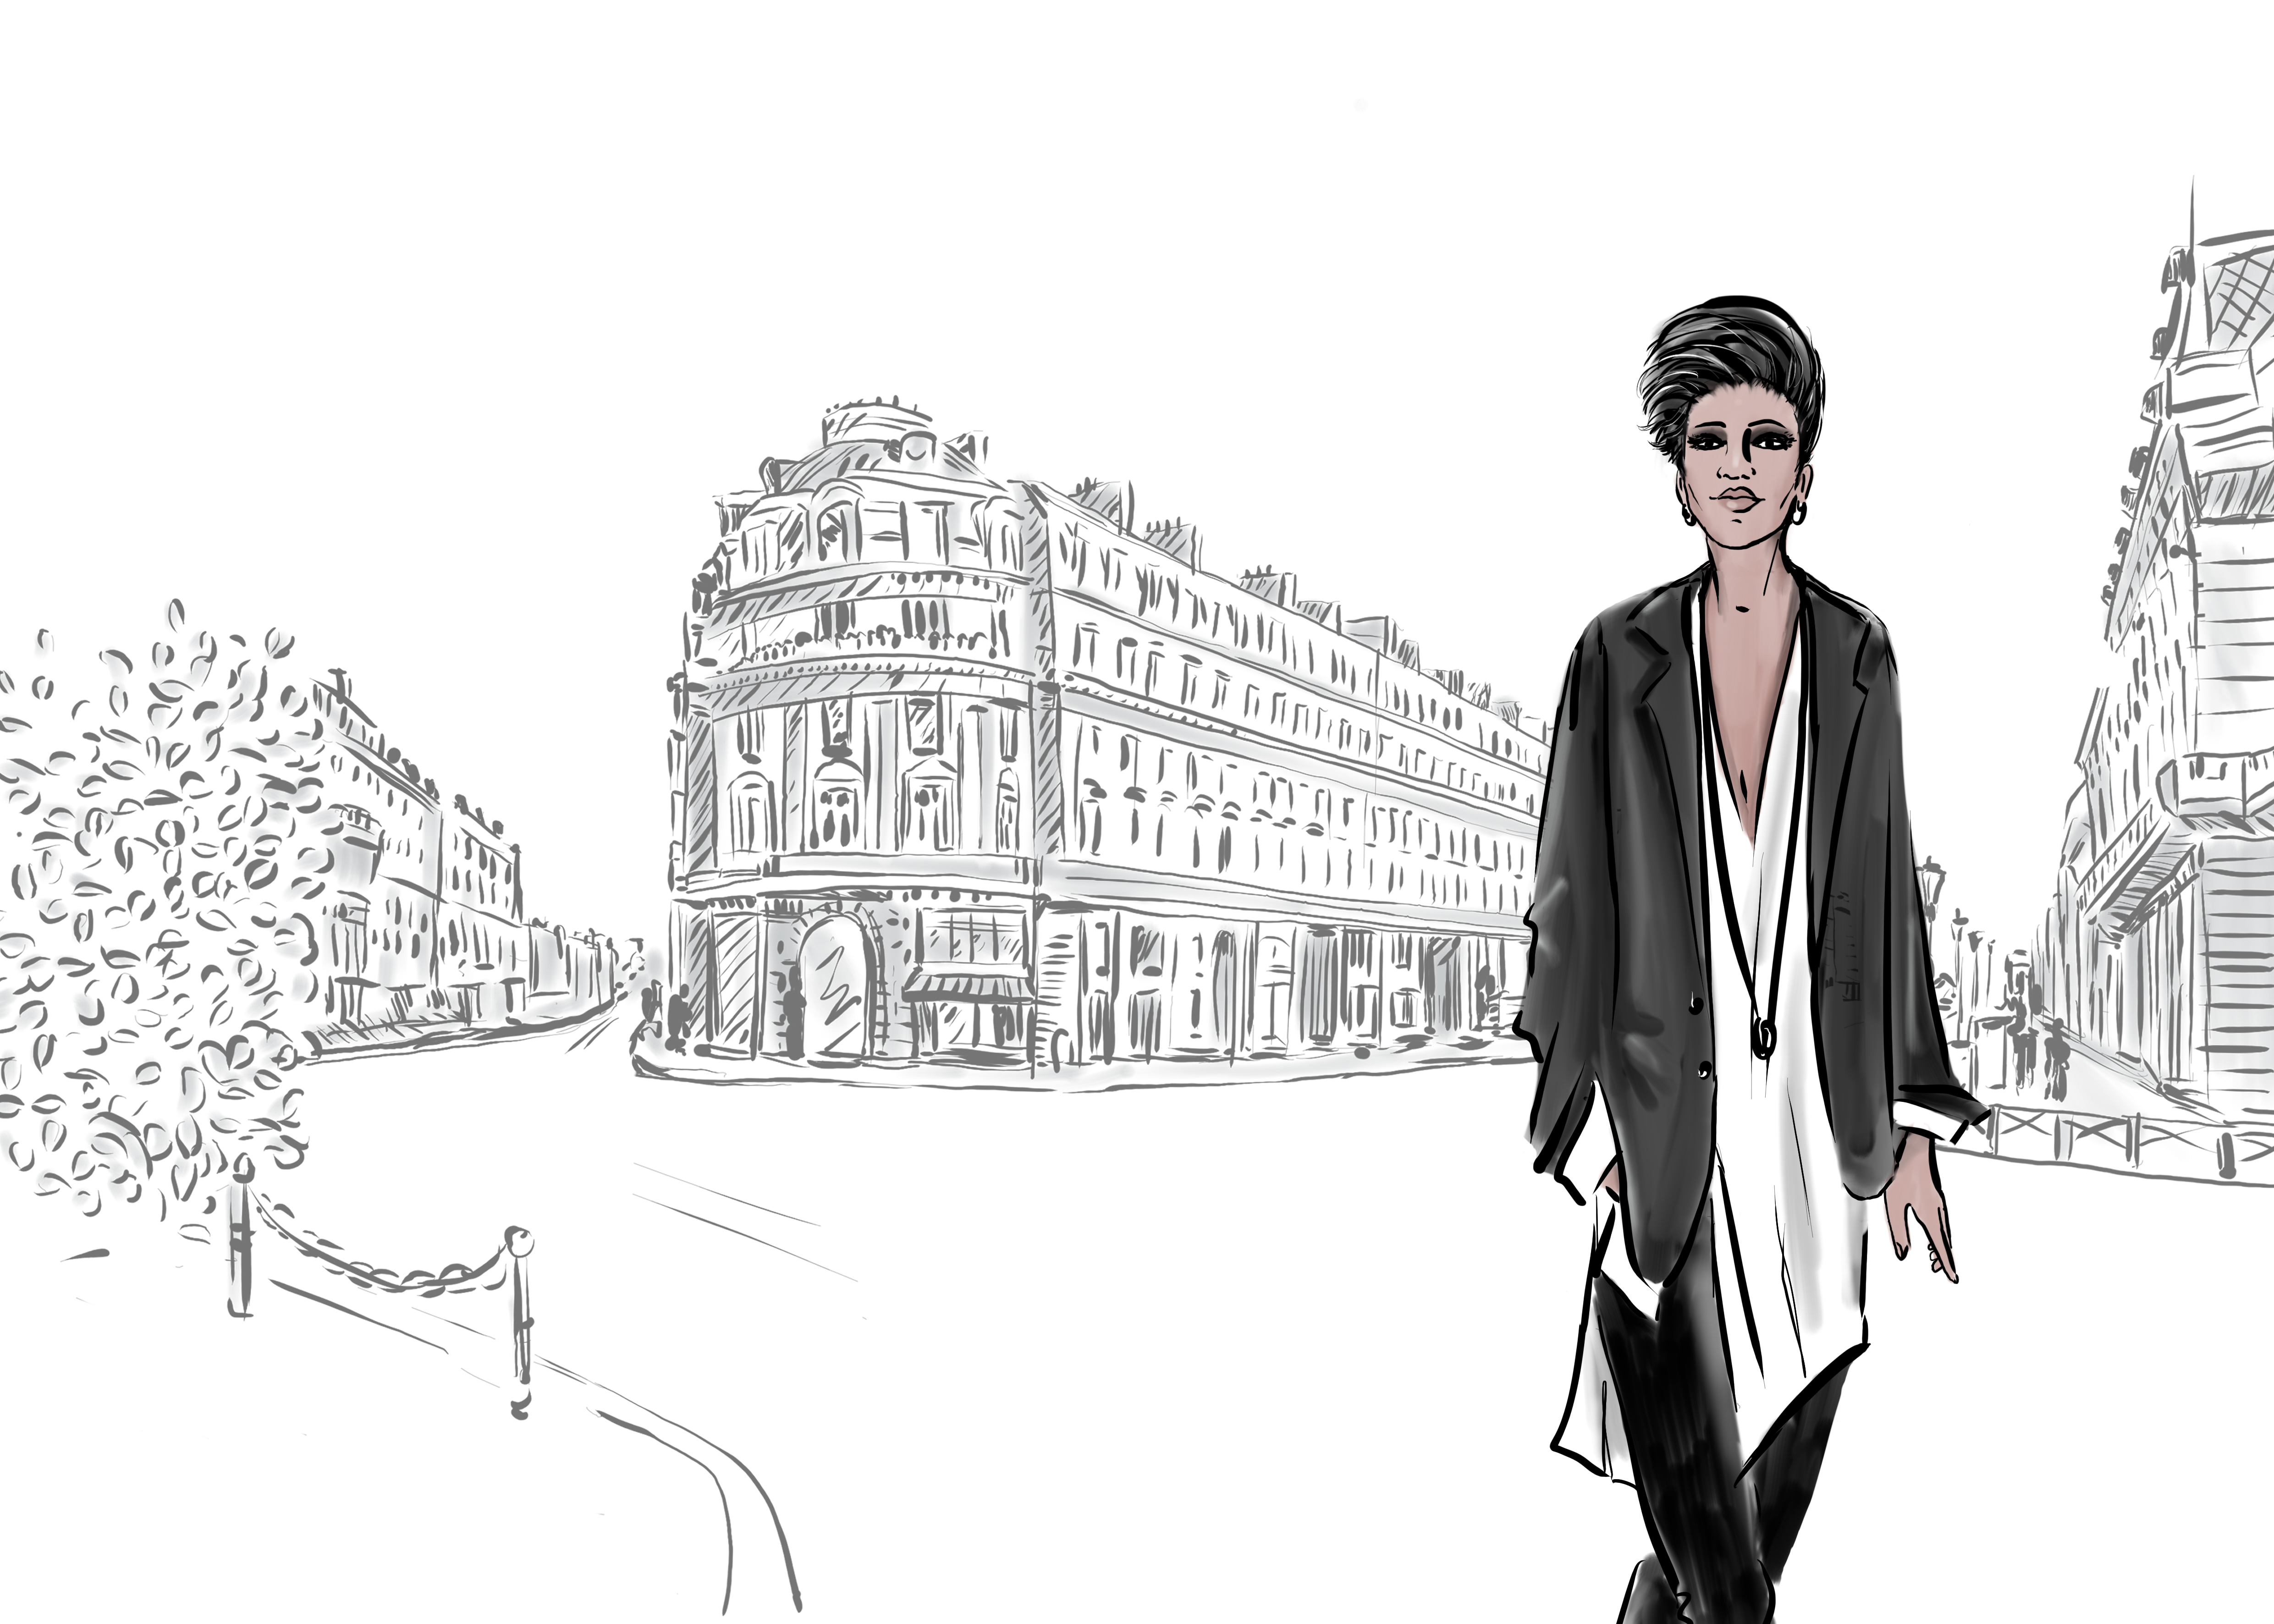 ILNI, illustrated by Linda Zoon, Cresces, Faux-Leather bags